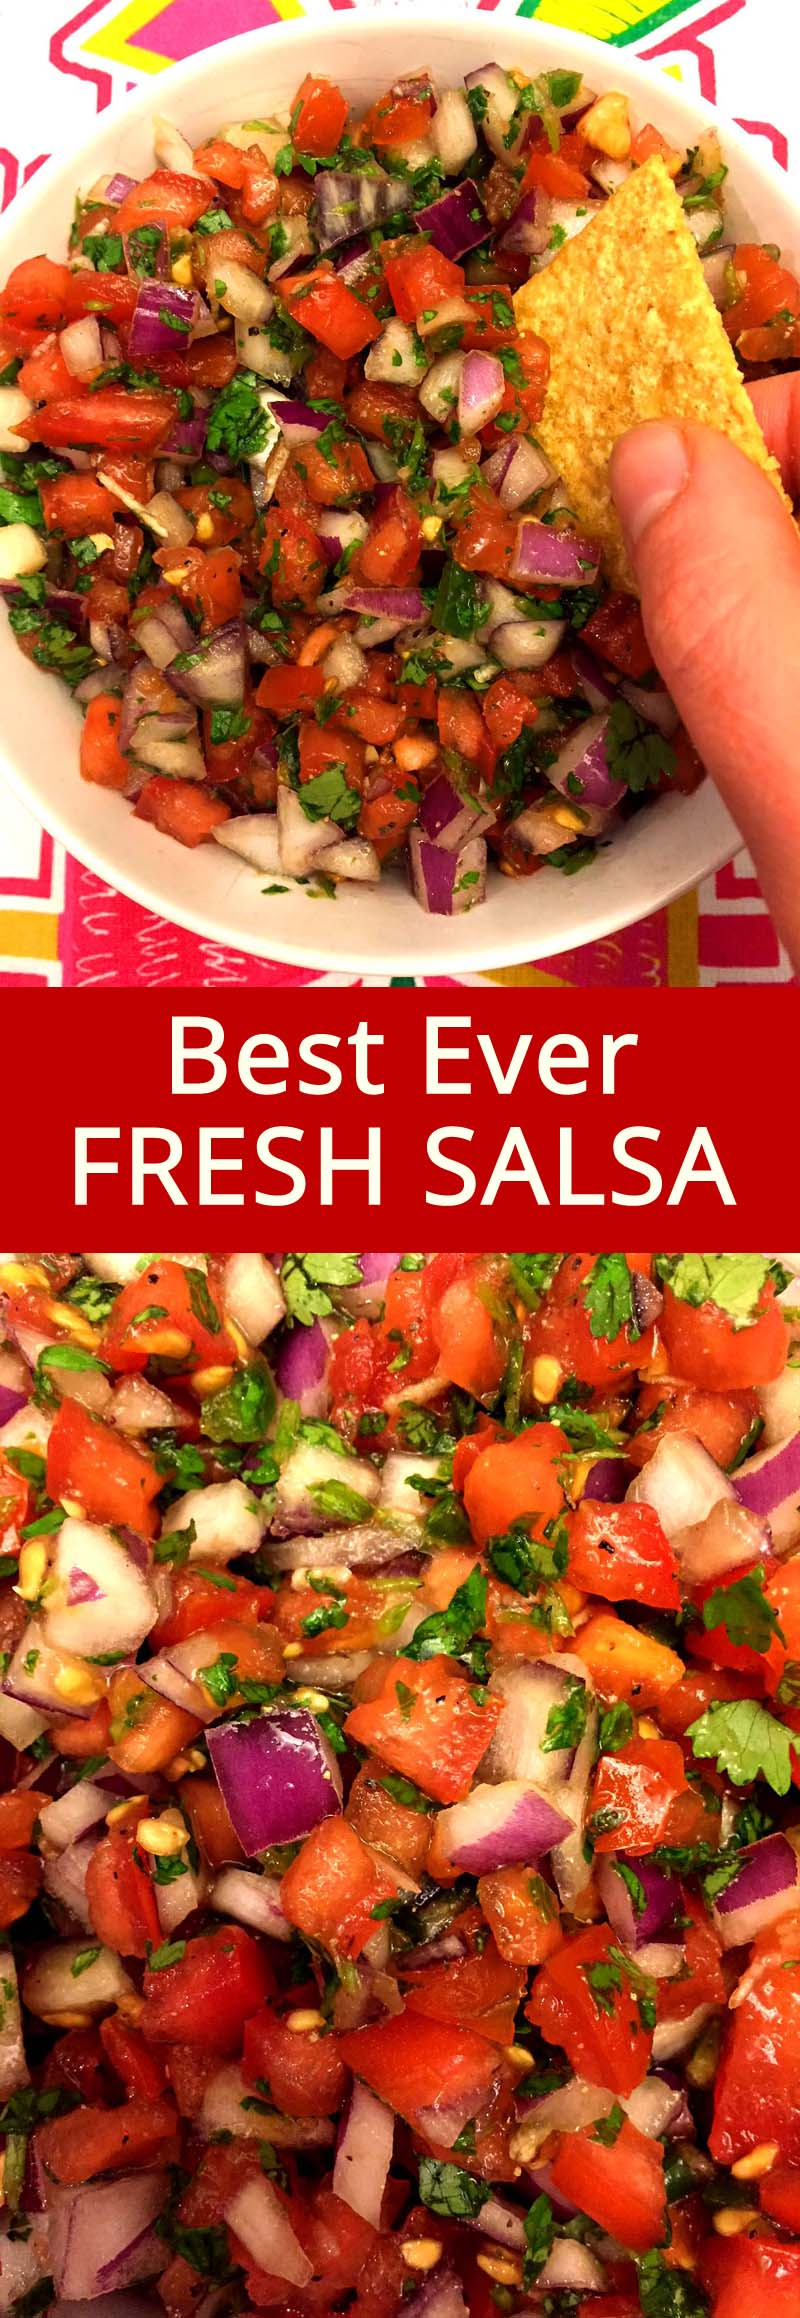 This Mexican pico de gallo fresh salsa is the best salsa ever! So fresh, colorful and delicious, bursting with flavor! Once you try this homemade pico de gallo, you'll never buy salsa at the store!